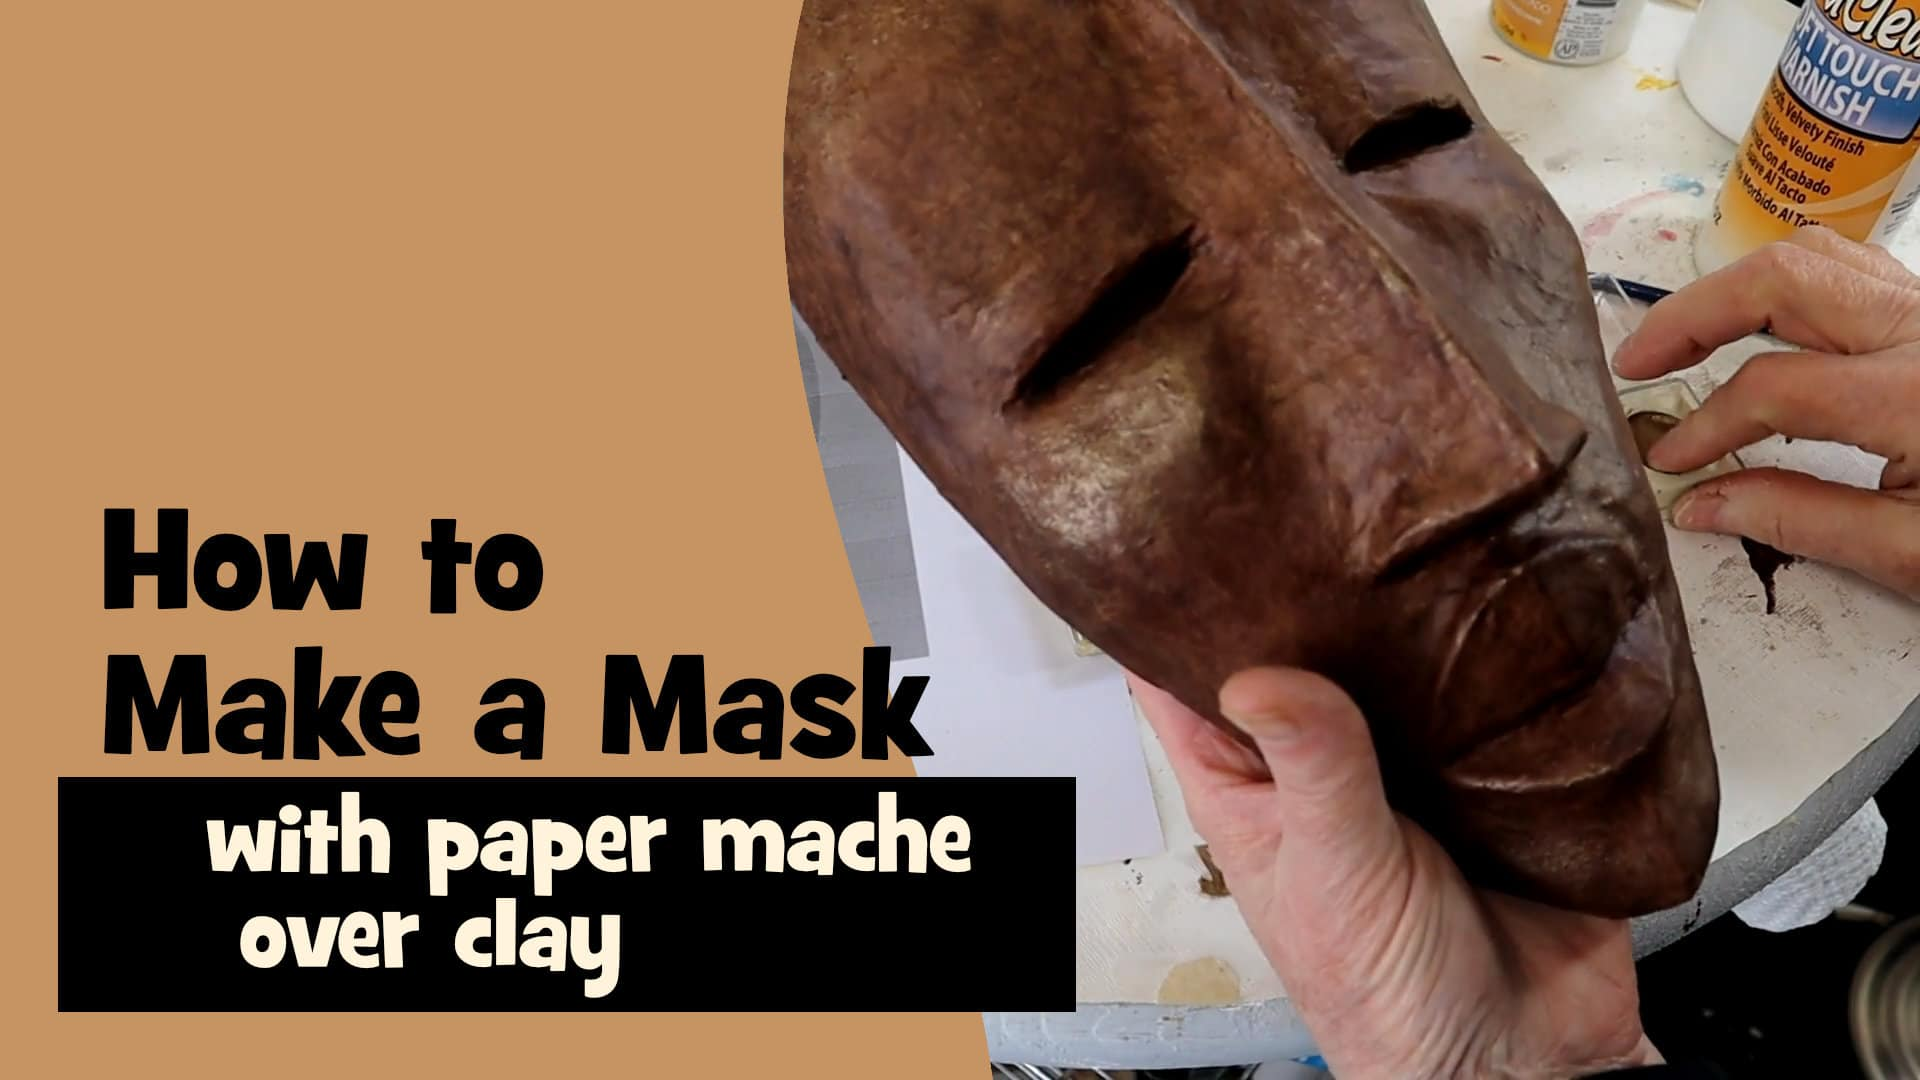 How to make a mask with paper mache